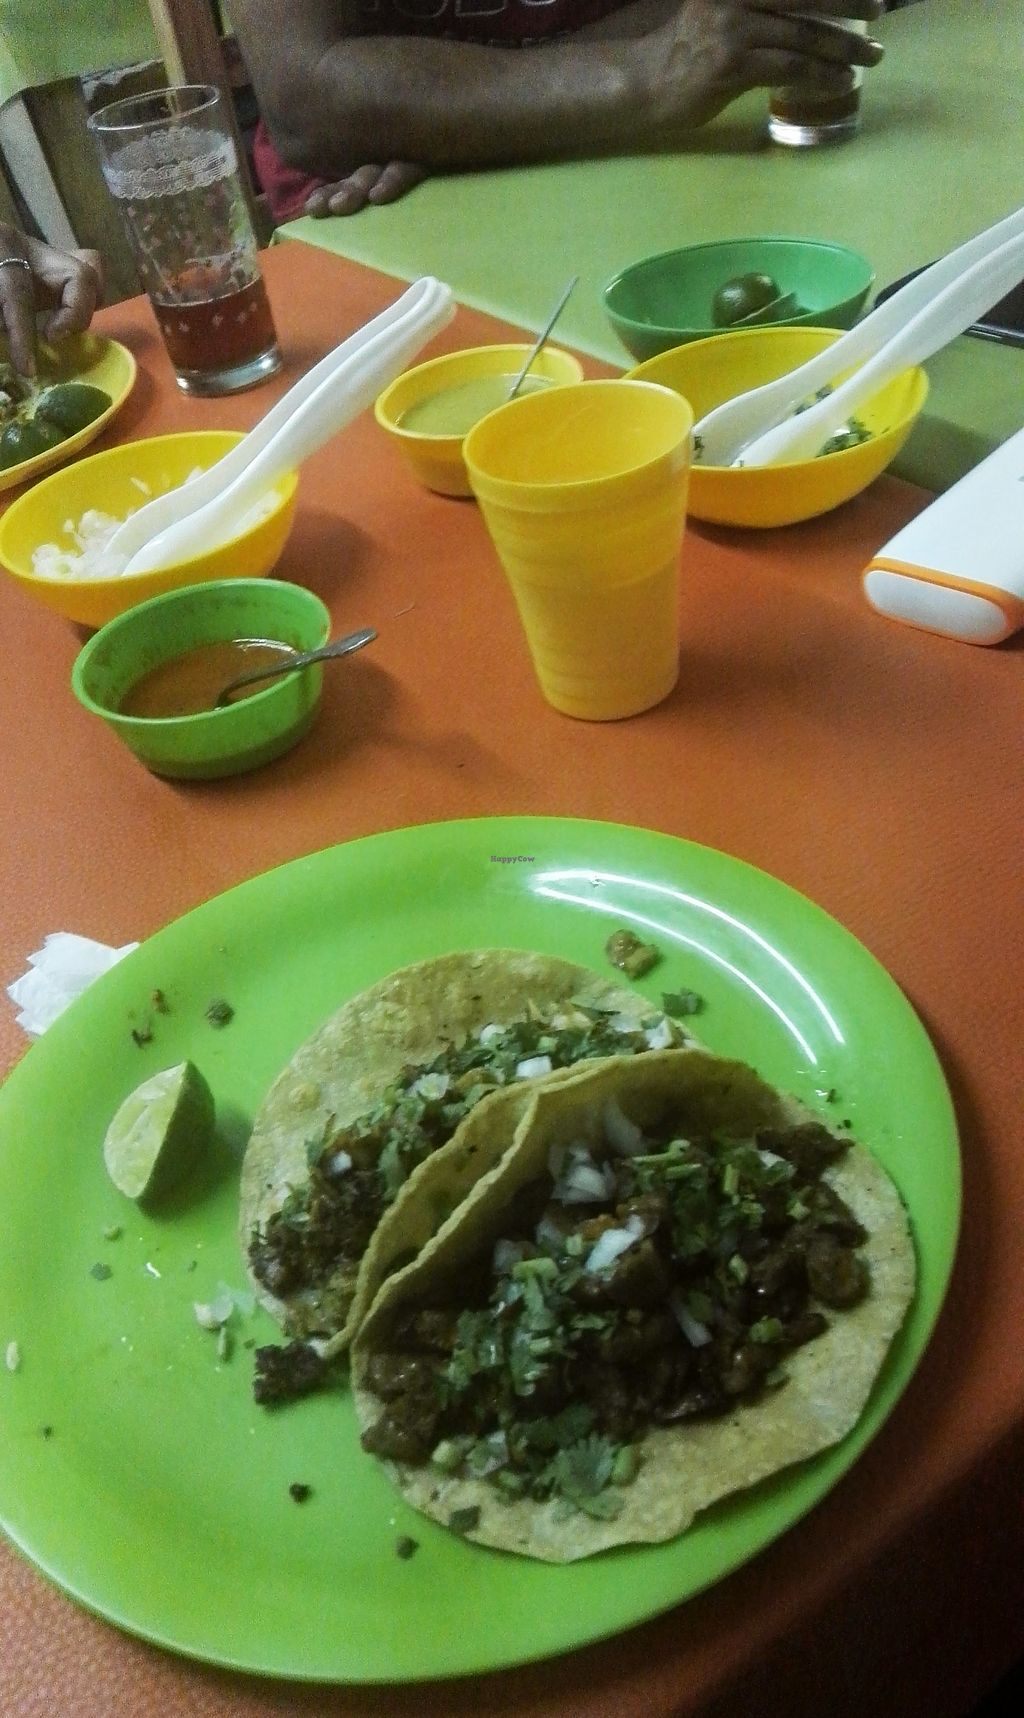 """Photo of Taco Station  by <a href=""""/members/profile/Caroly"""">Caroly</a> <br/>Tacos super ricos! :) <br/> March 25, 2018  - <a href='/contact/abuse/image/113356/375719'>Report</a>"""